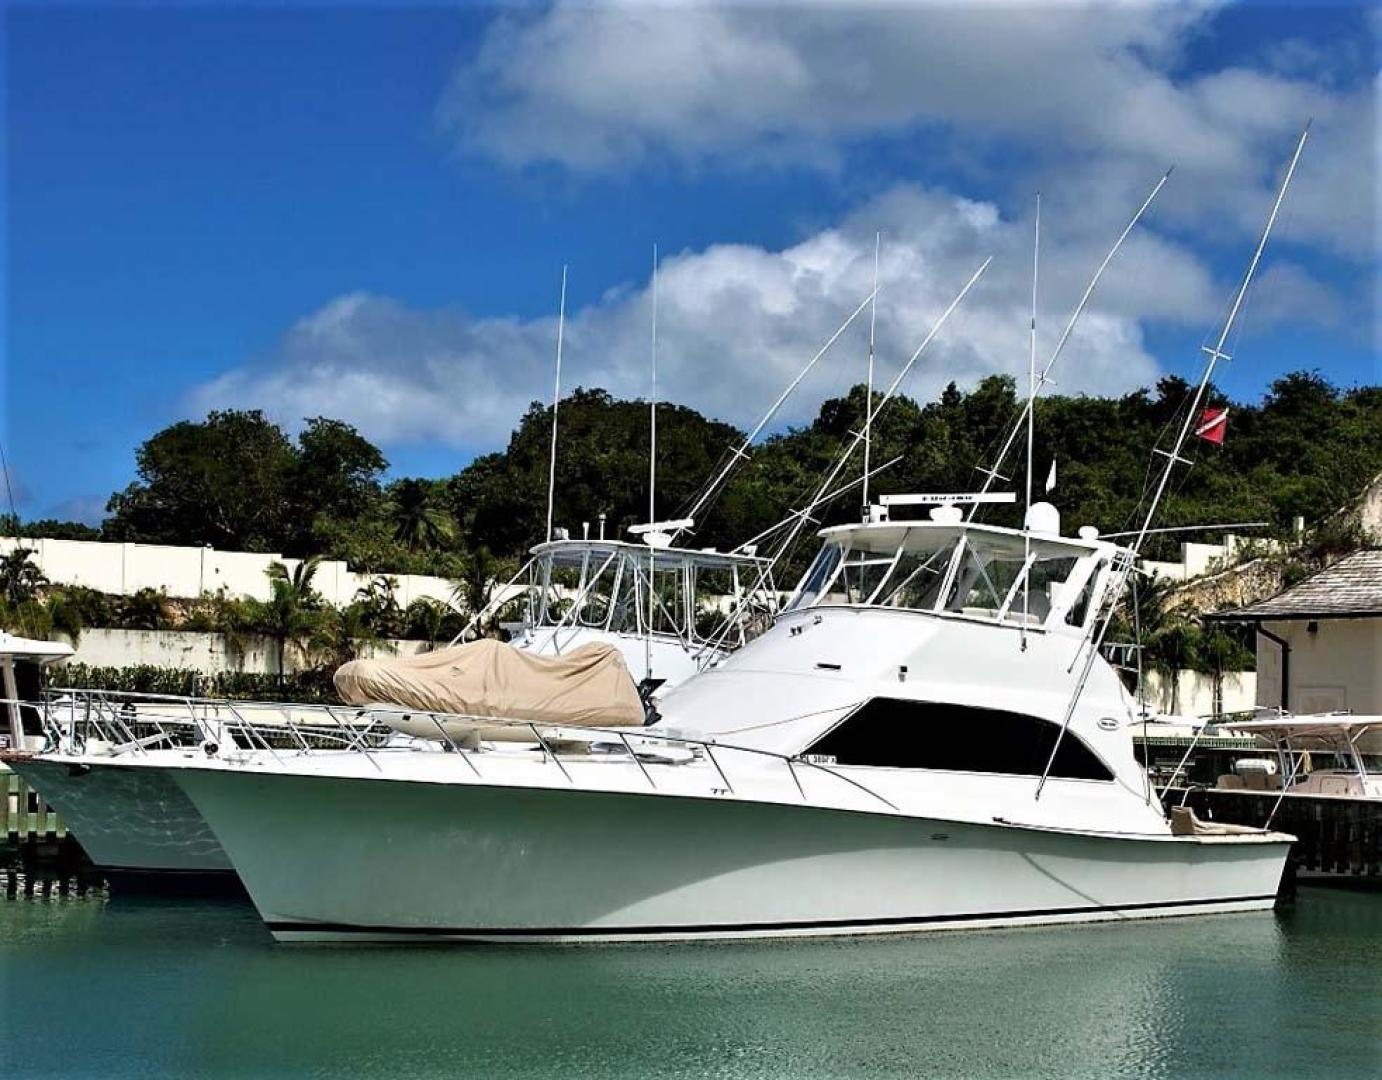 Ocean-Yachts-53-Super-Sport-1998-Made-in-the-Shade-Stuart-United-States-Profile-929947